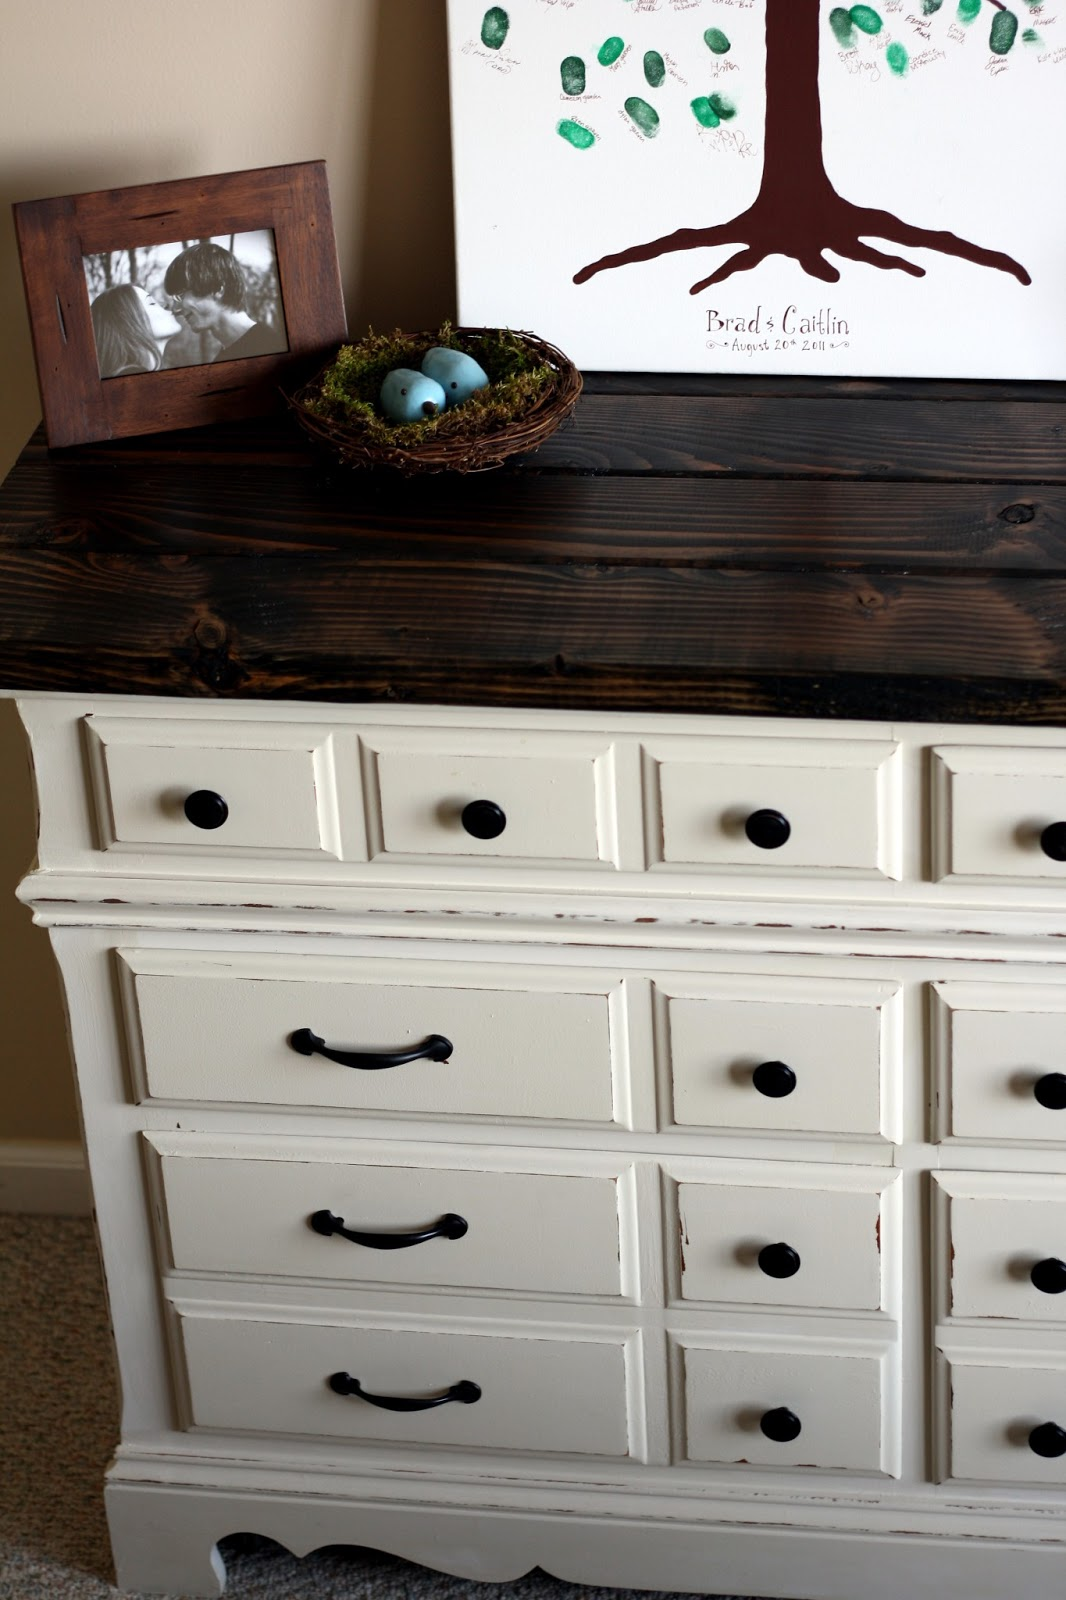 The semi frugal life diy dresser with rustic wooden top Best time to buy bedroom furniture on sale